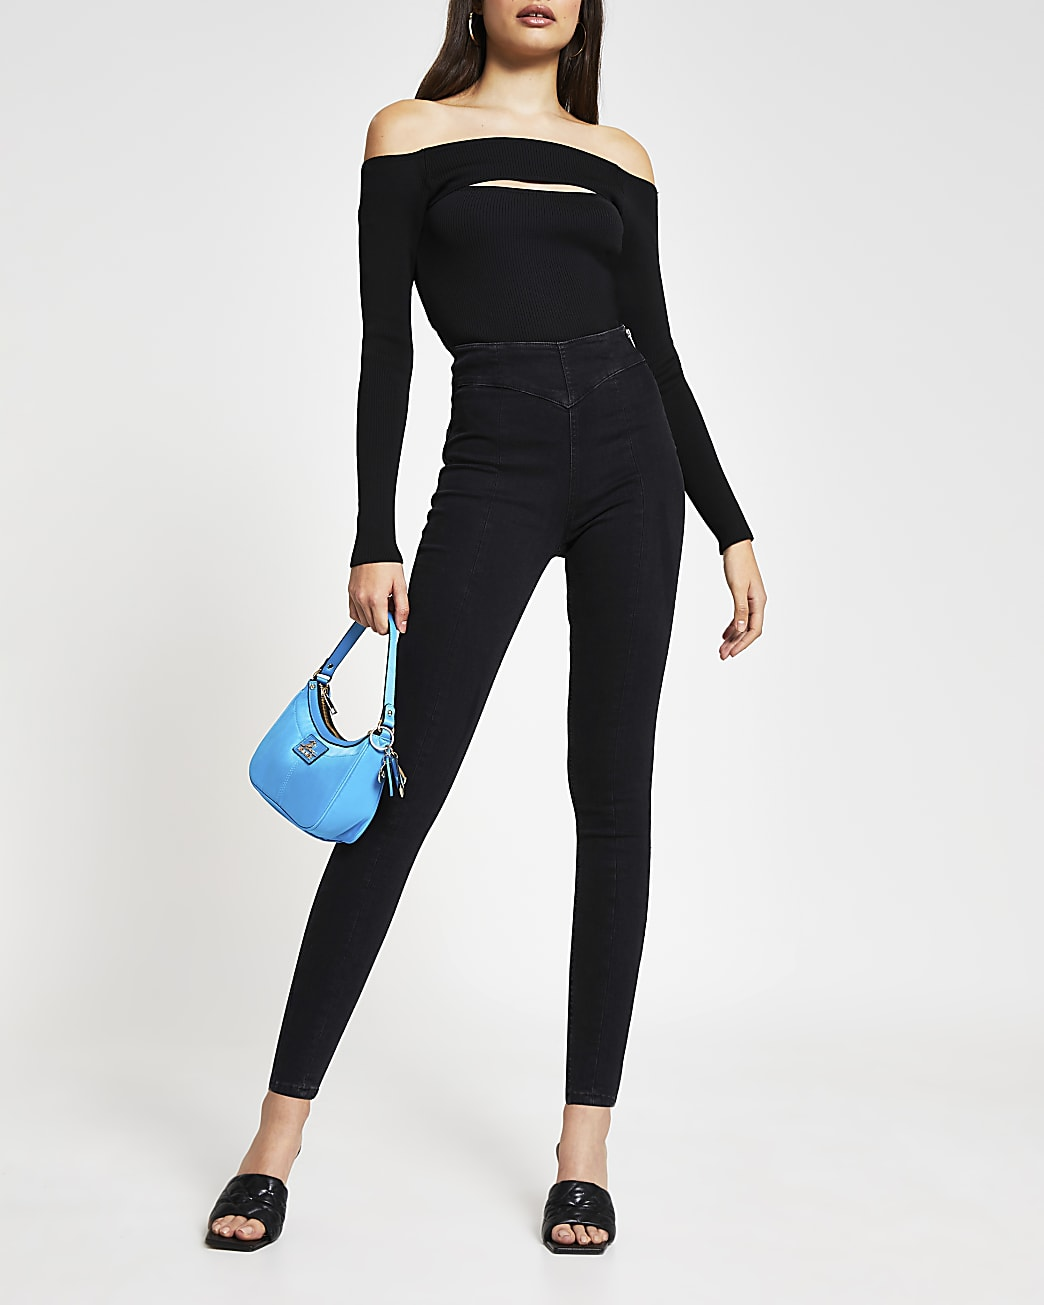 Black Molly high waisted skinny jeans